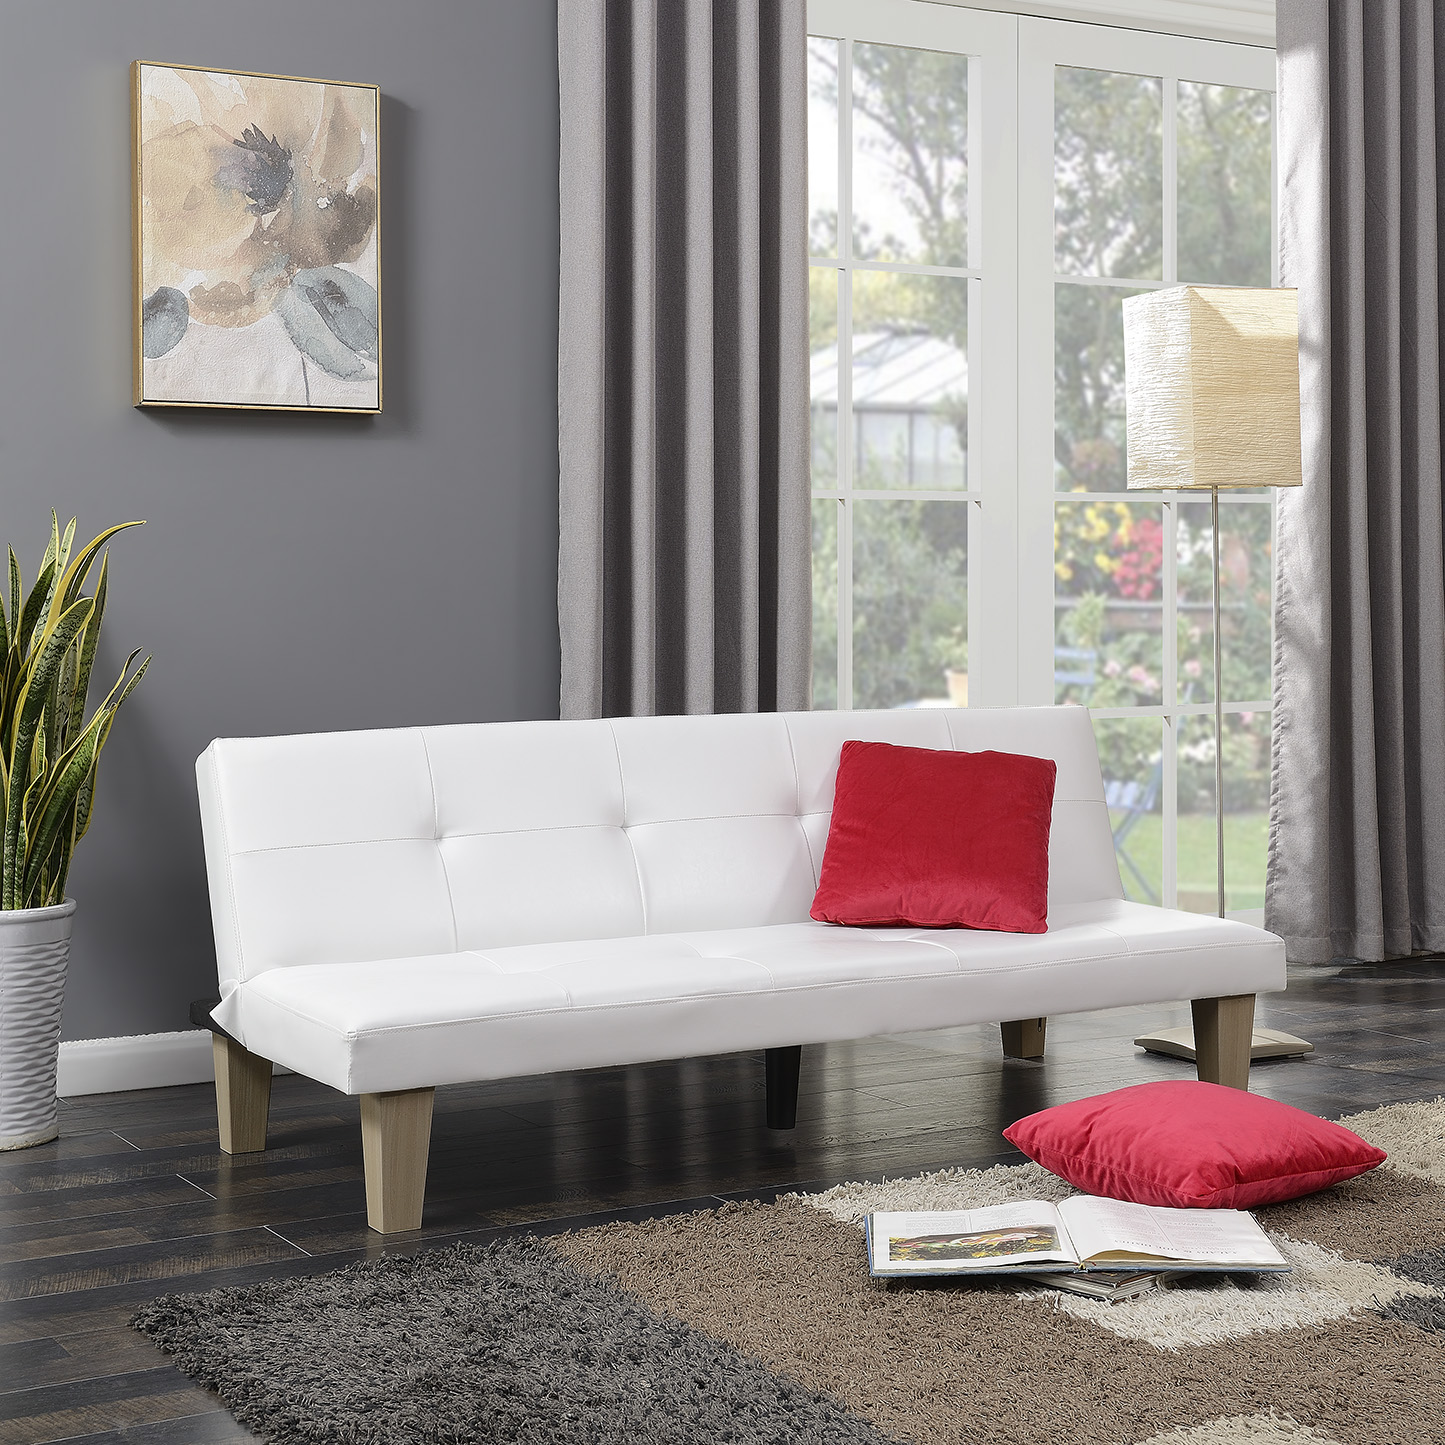 Belleze Convertible Futon Folding Sofa Bed Couch Adjustable Recline Lounger w/ (2) Pillow, White